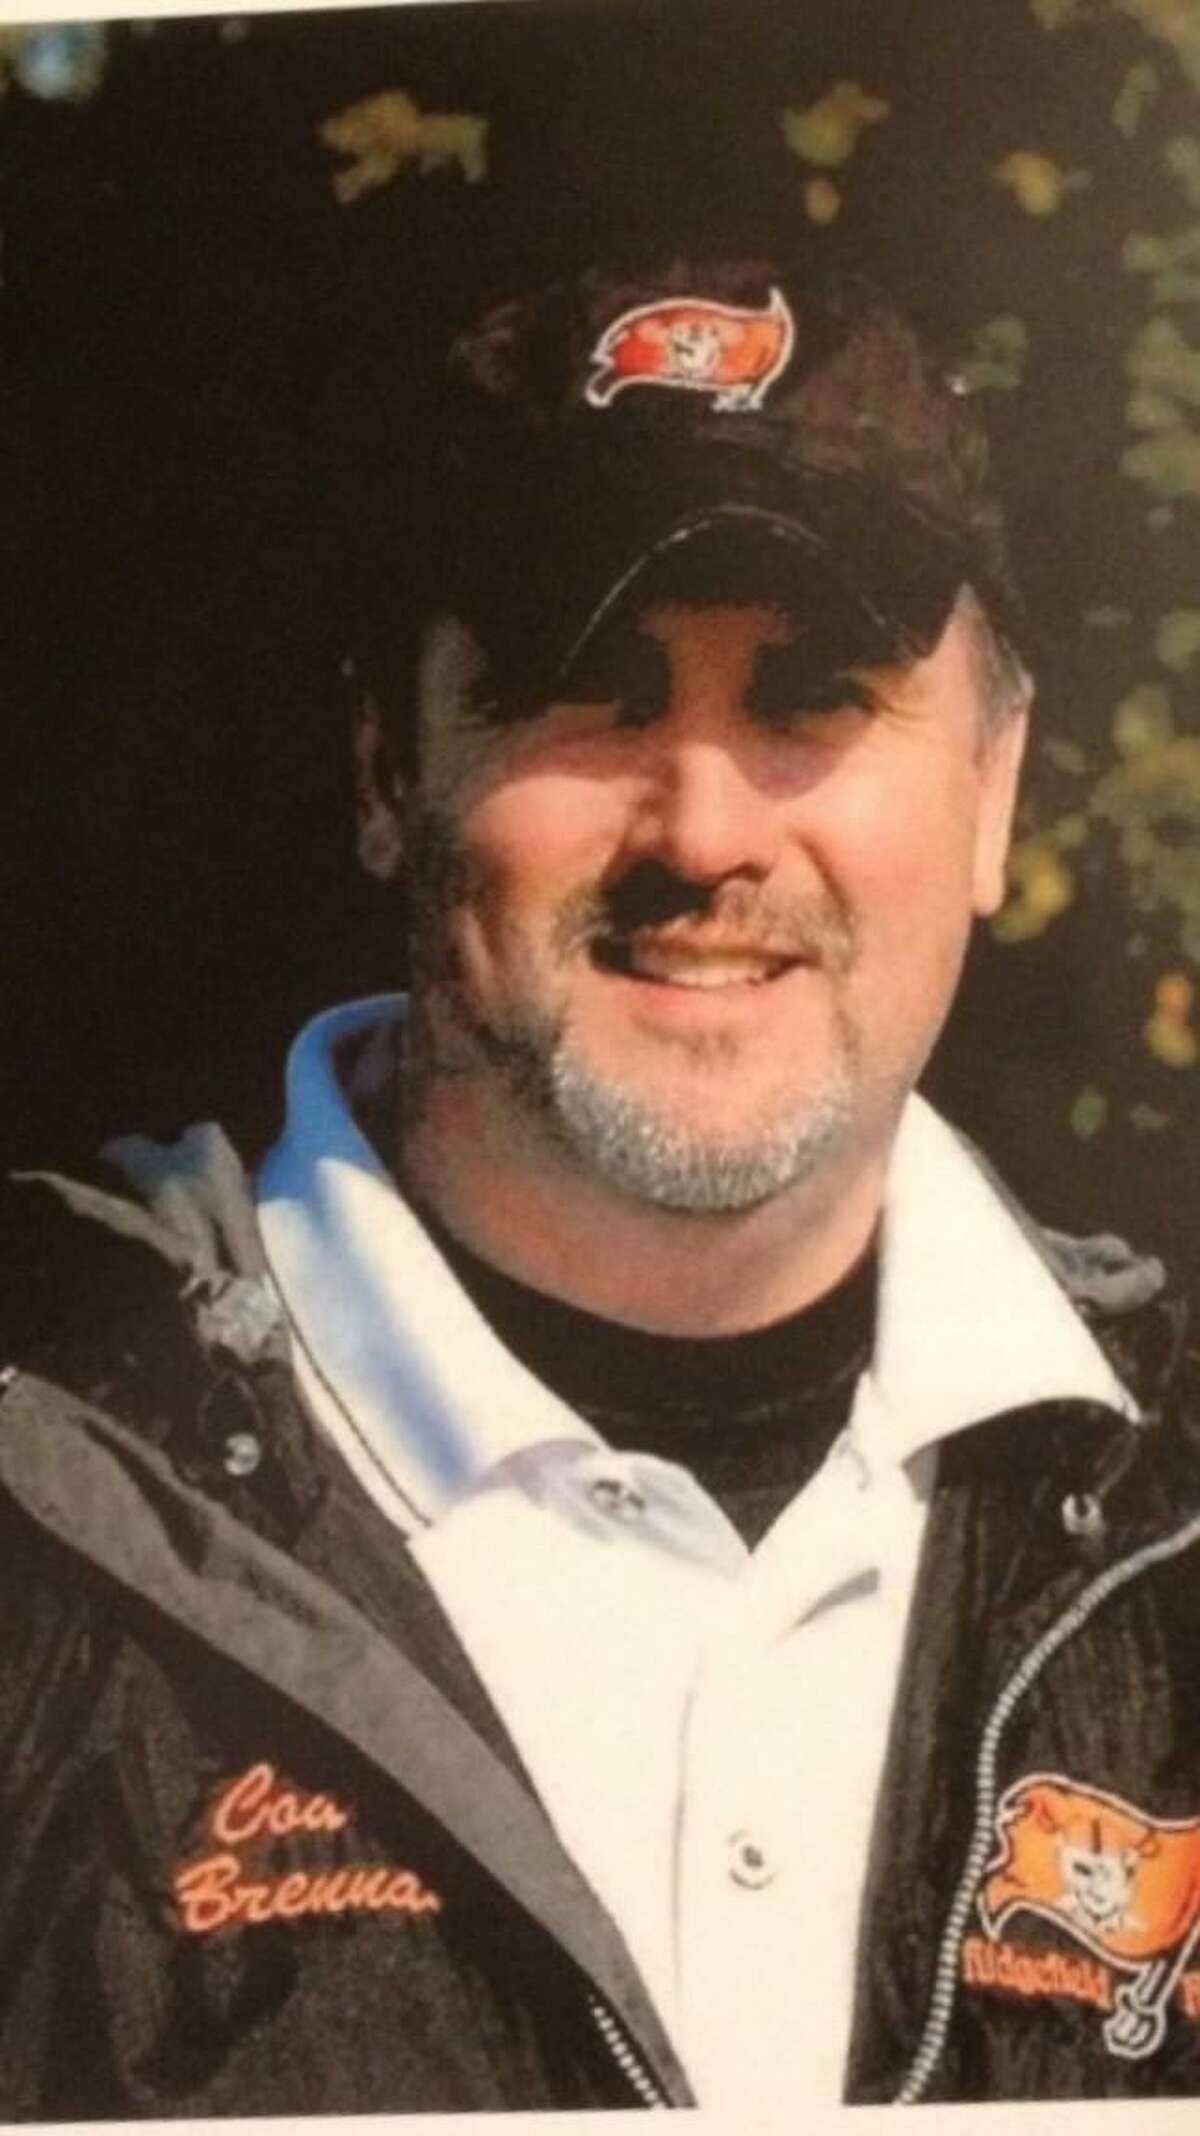 Edward Brennan, 50, beloved father, husband and coach who died of of a cardiac event at a Ridgefield health club in Dec. 2012.